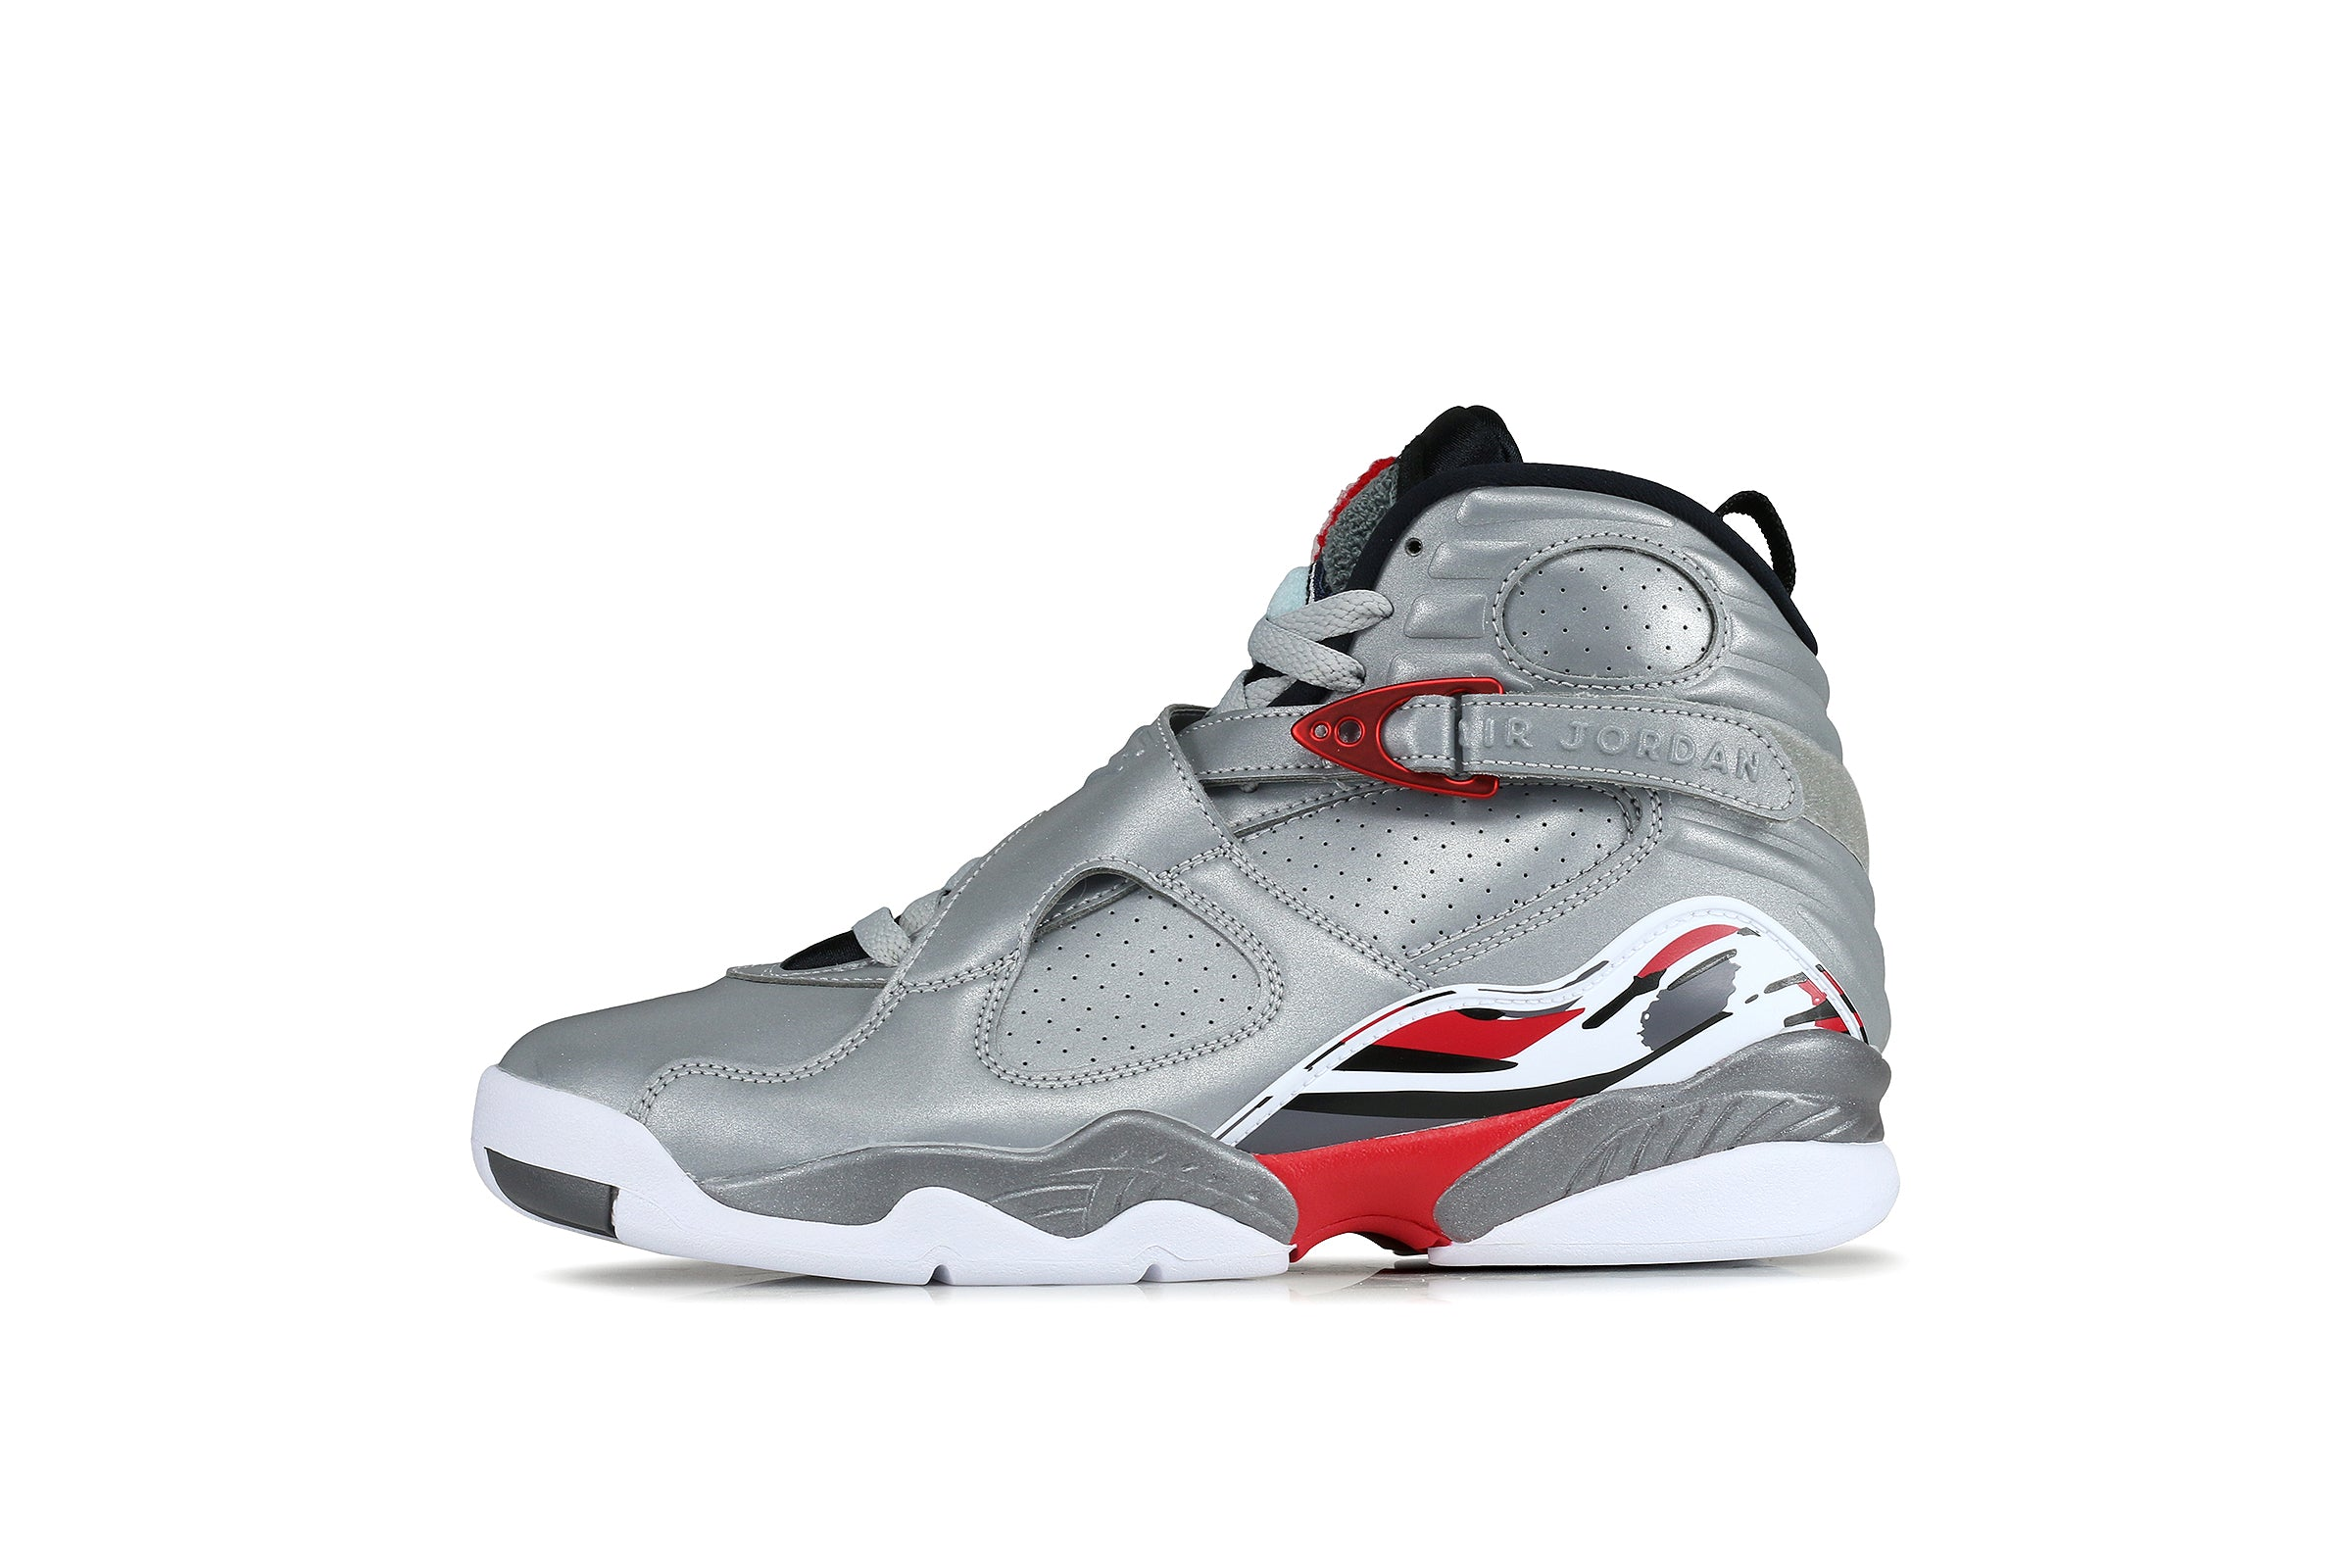 Nike Air Jordan 8 Retro SP 3M NRG